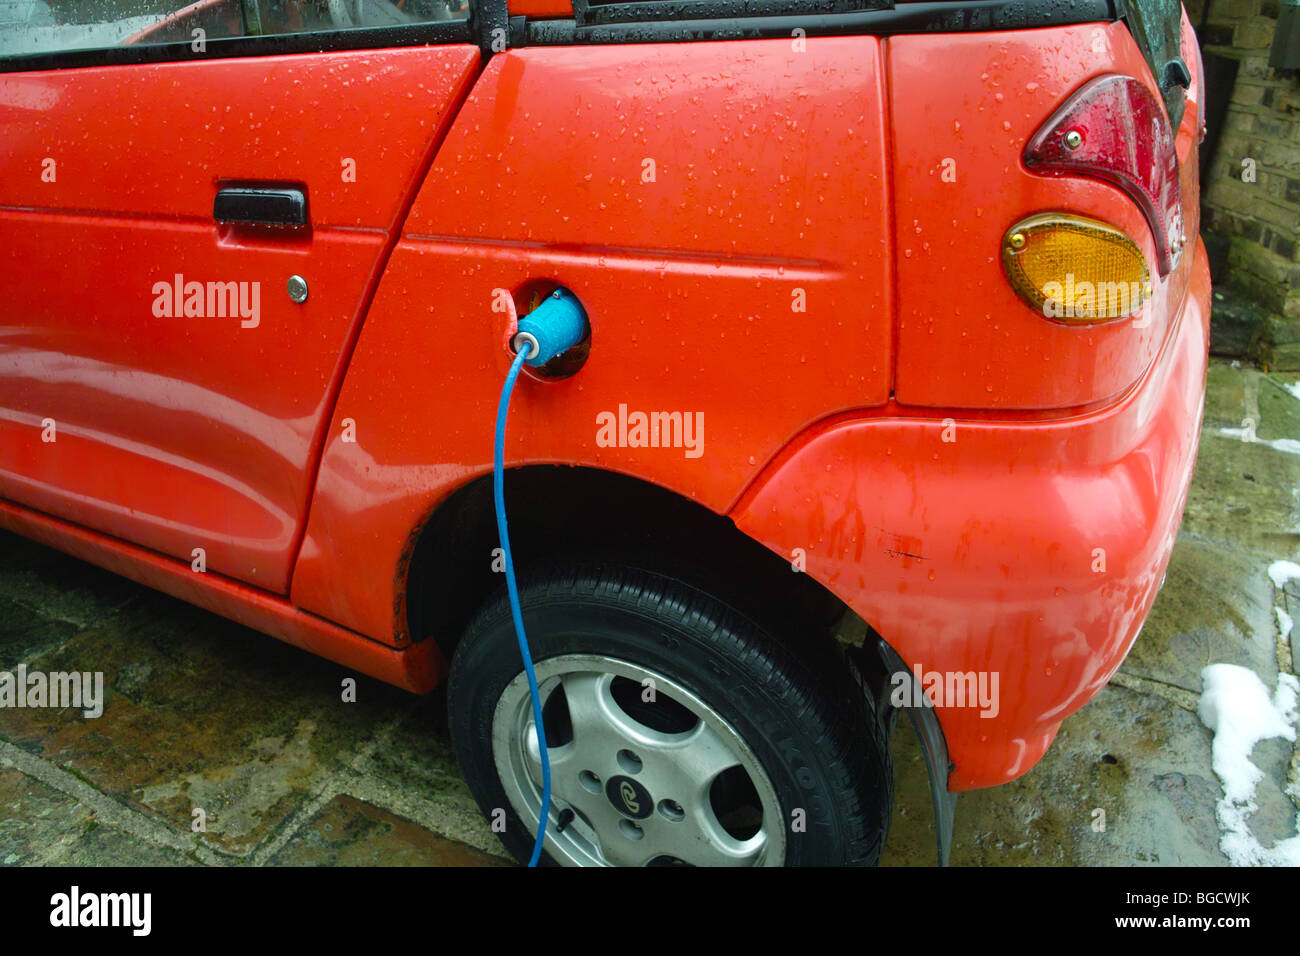 G Wiz GWiz G-Wiz clean green battery electric powered vehicle car plug plugged in charge charging recharging recharge - Stock Image